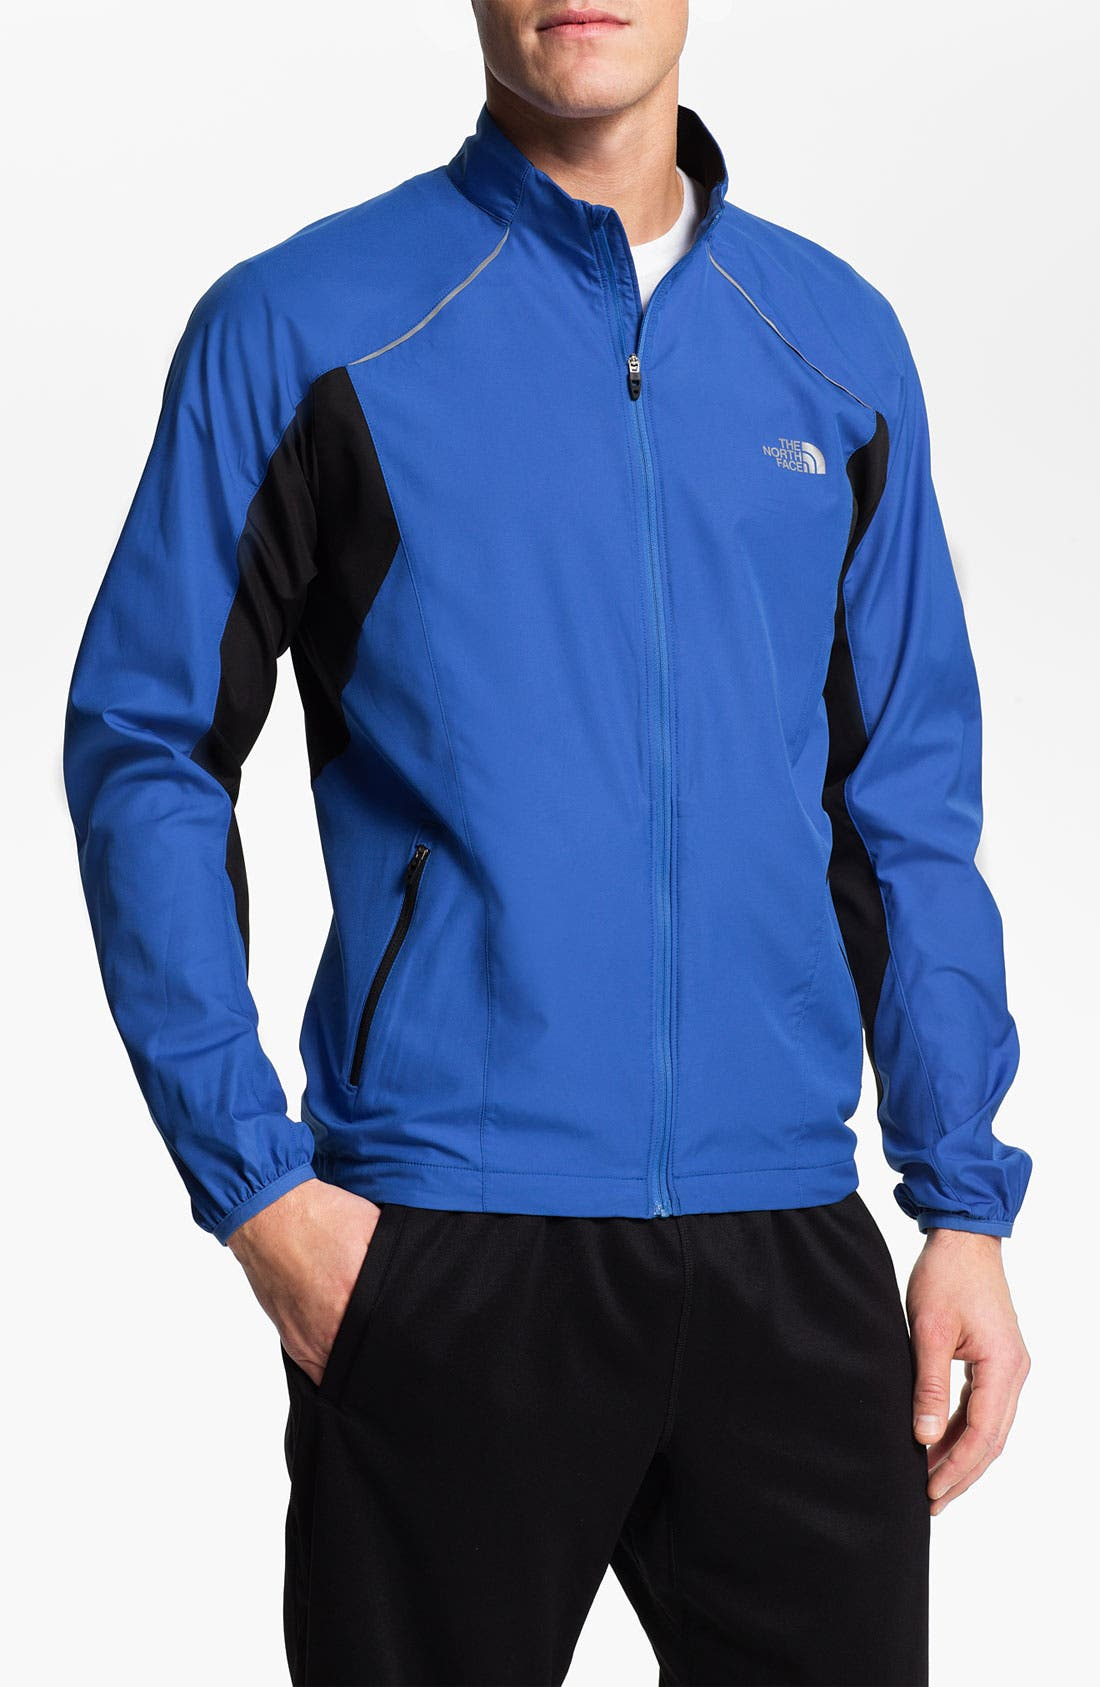 Alternate Image 1 Selected - The North Face 'Torpedo Performance' Jacket